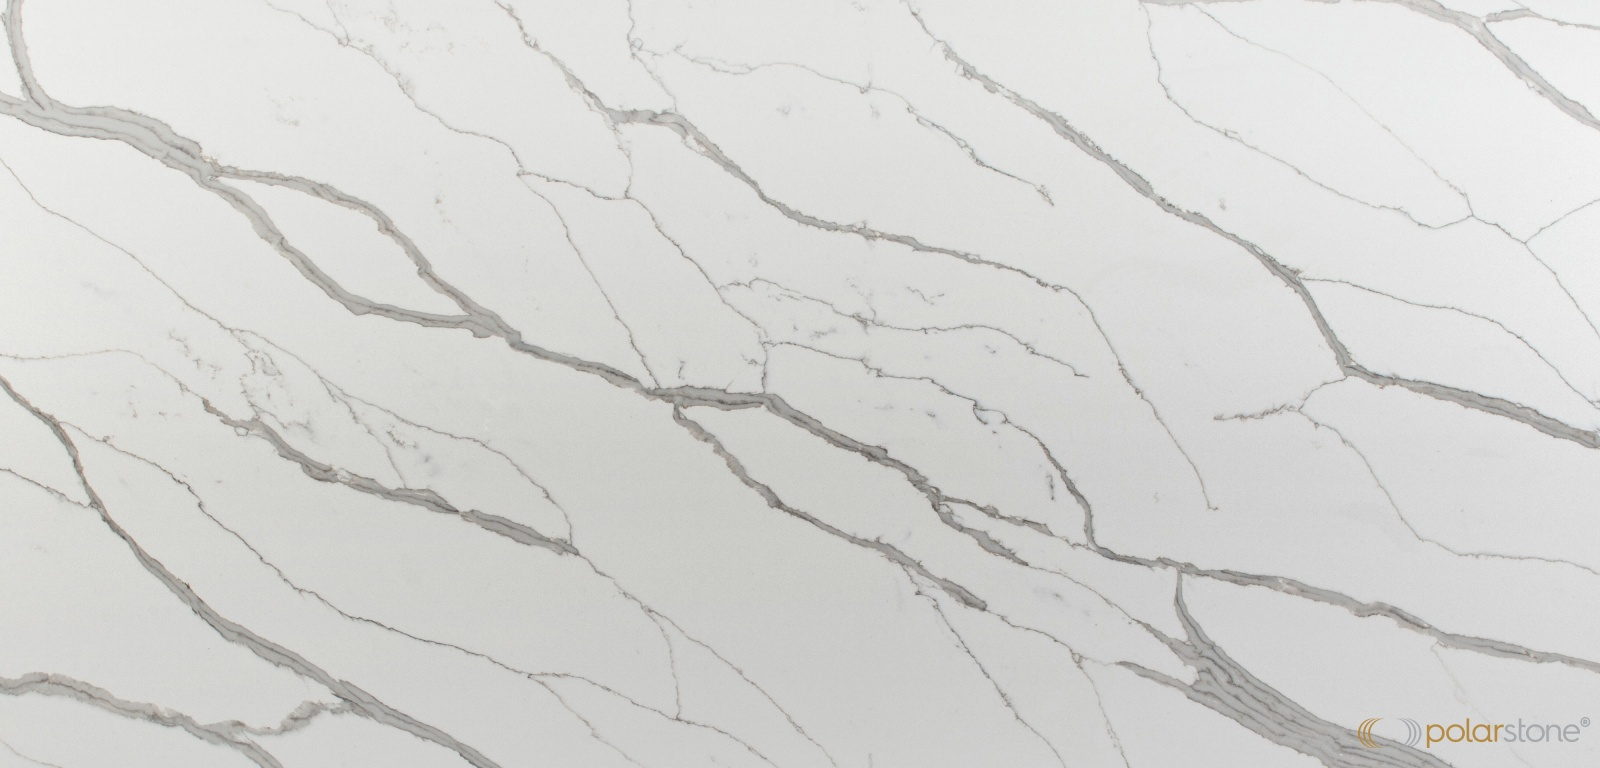 Polarstone Calacatta Manhattan Quartz Countertops 5111